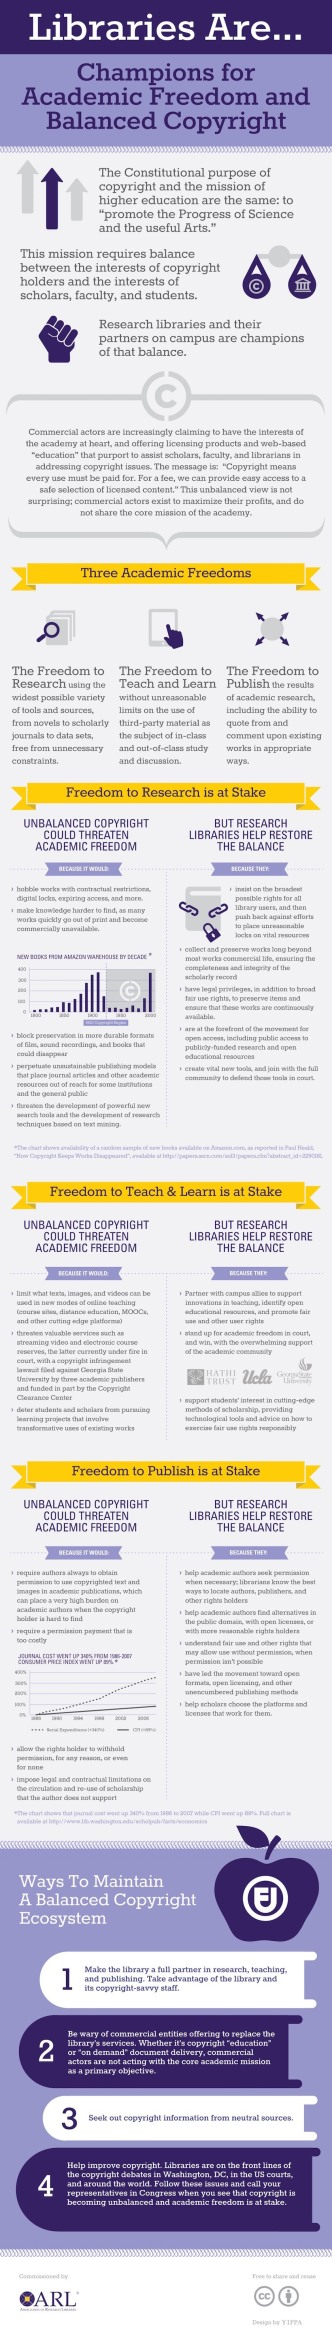 #Libraries lead the way to balanced copyright #infographic